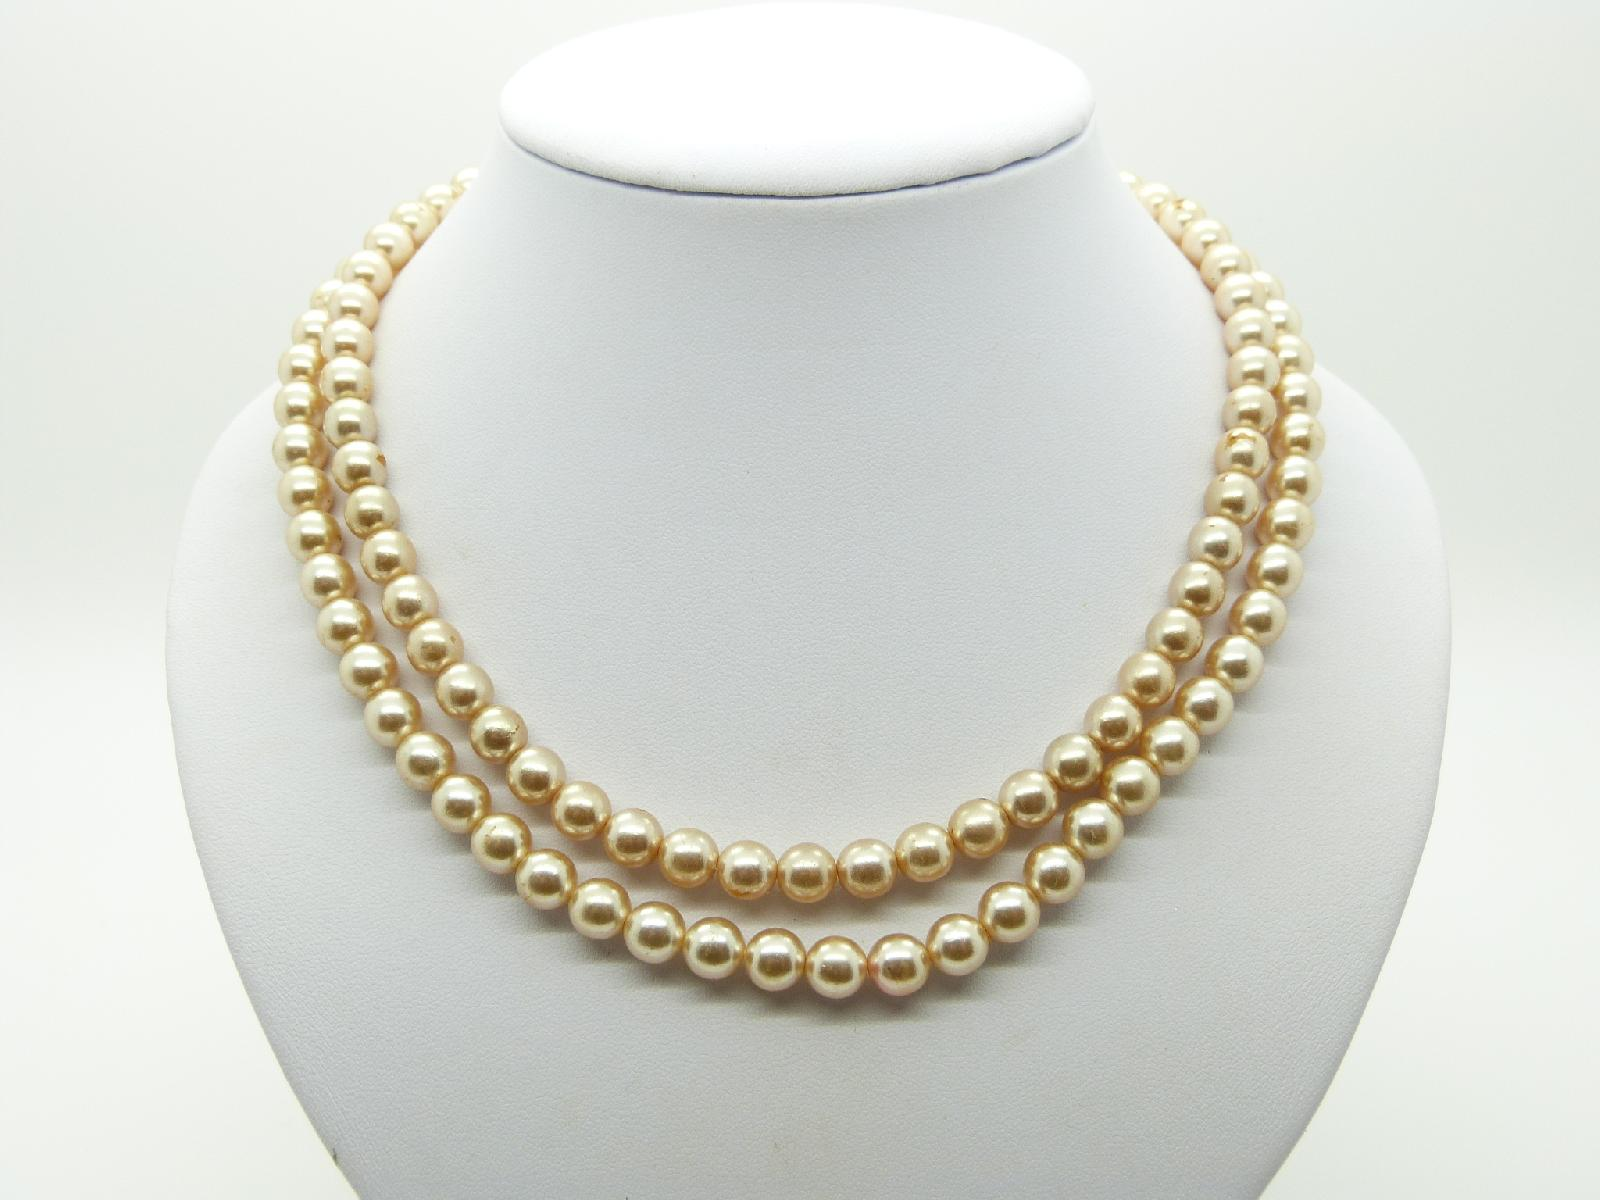 £13.00 - Vintage 50s Classy Two Row Glass Faux Pearl Bead Necklace 50cms